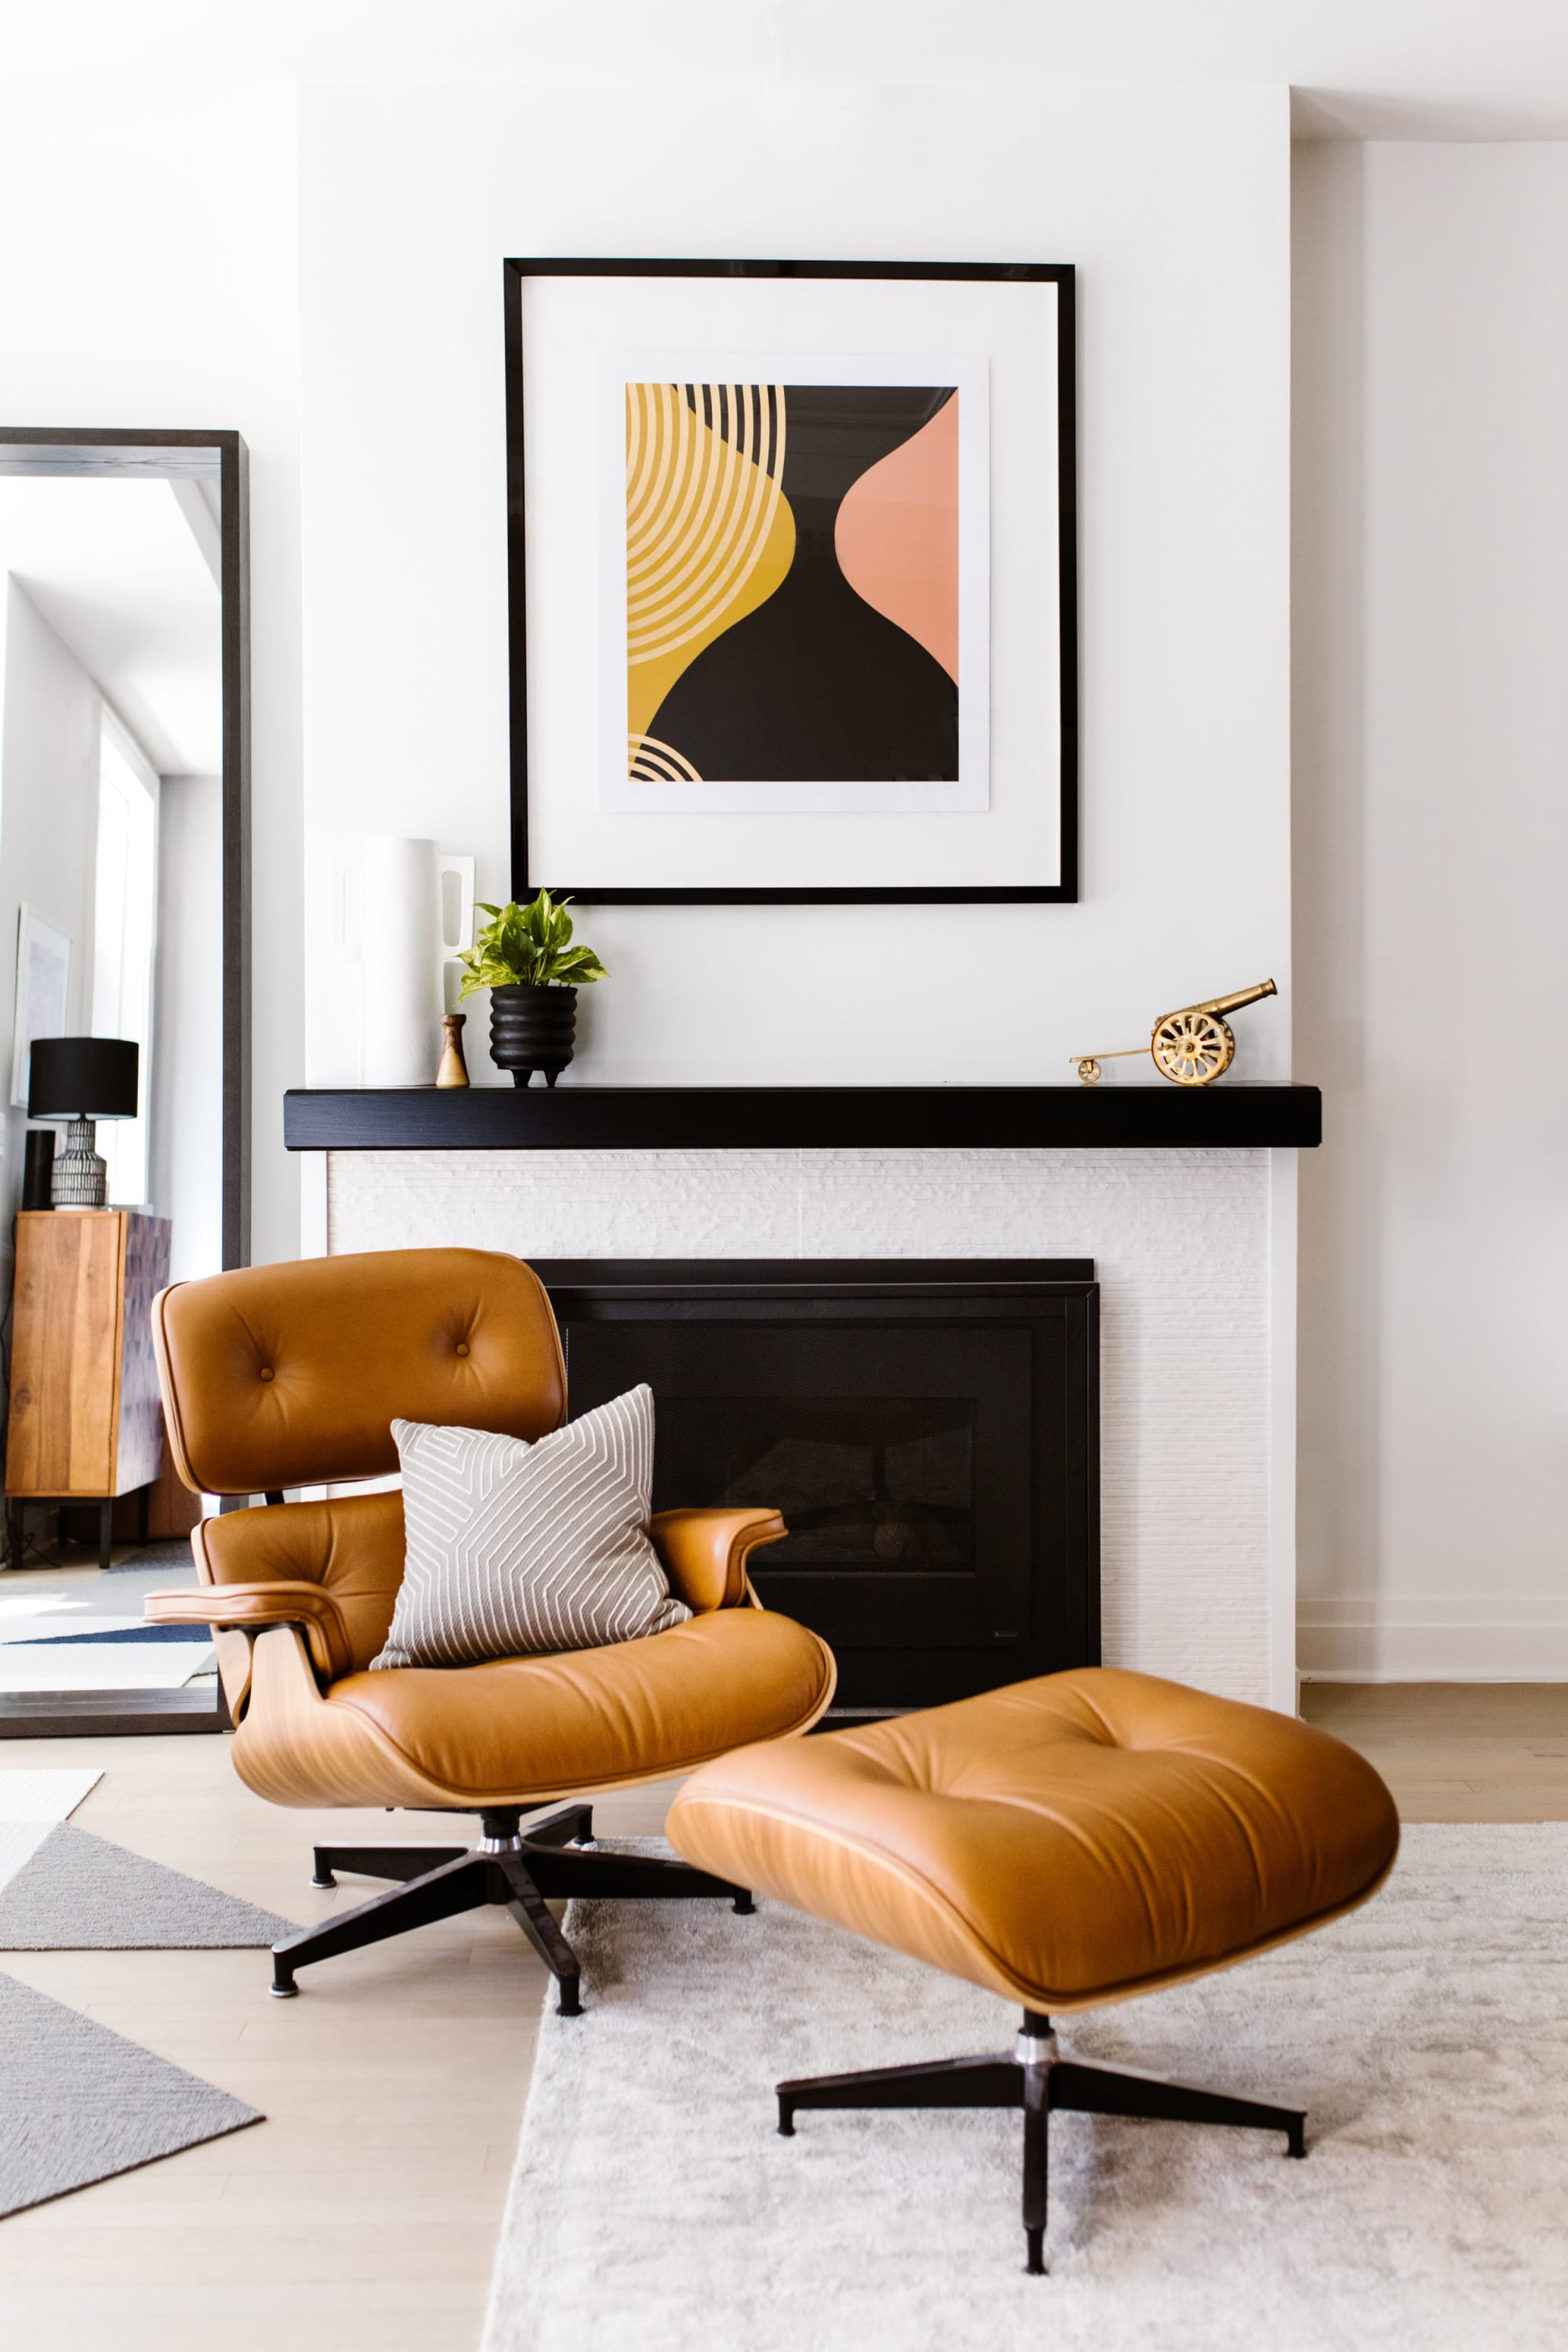 Interior Design by Kerra Michele Interiors seen at Private Residence, Washington - Shaw House